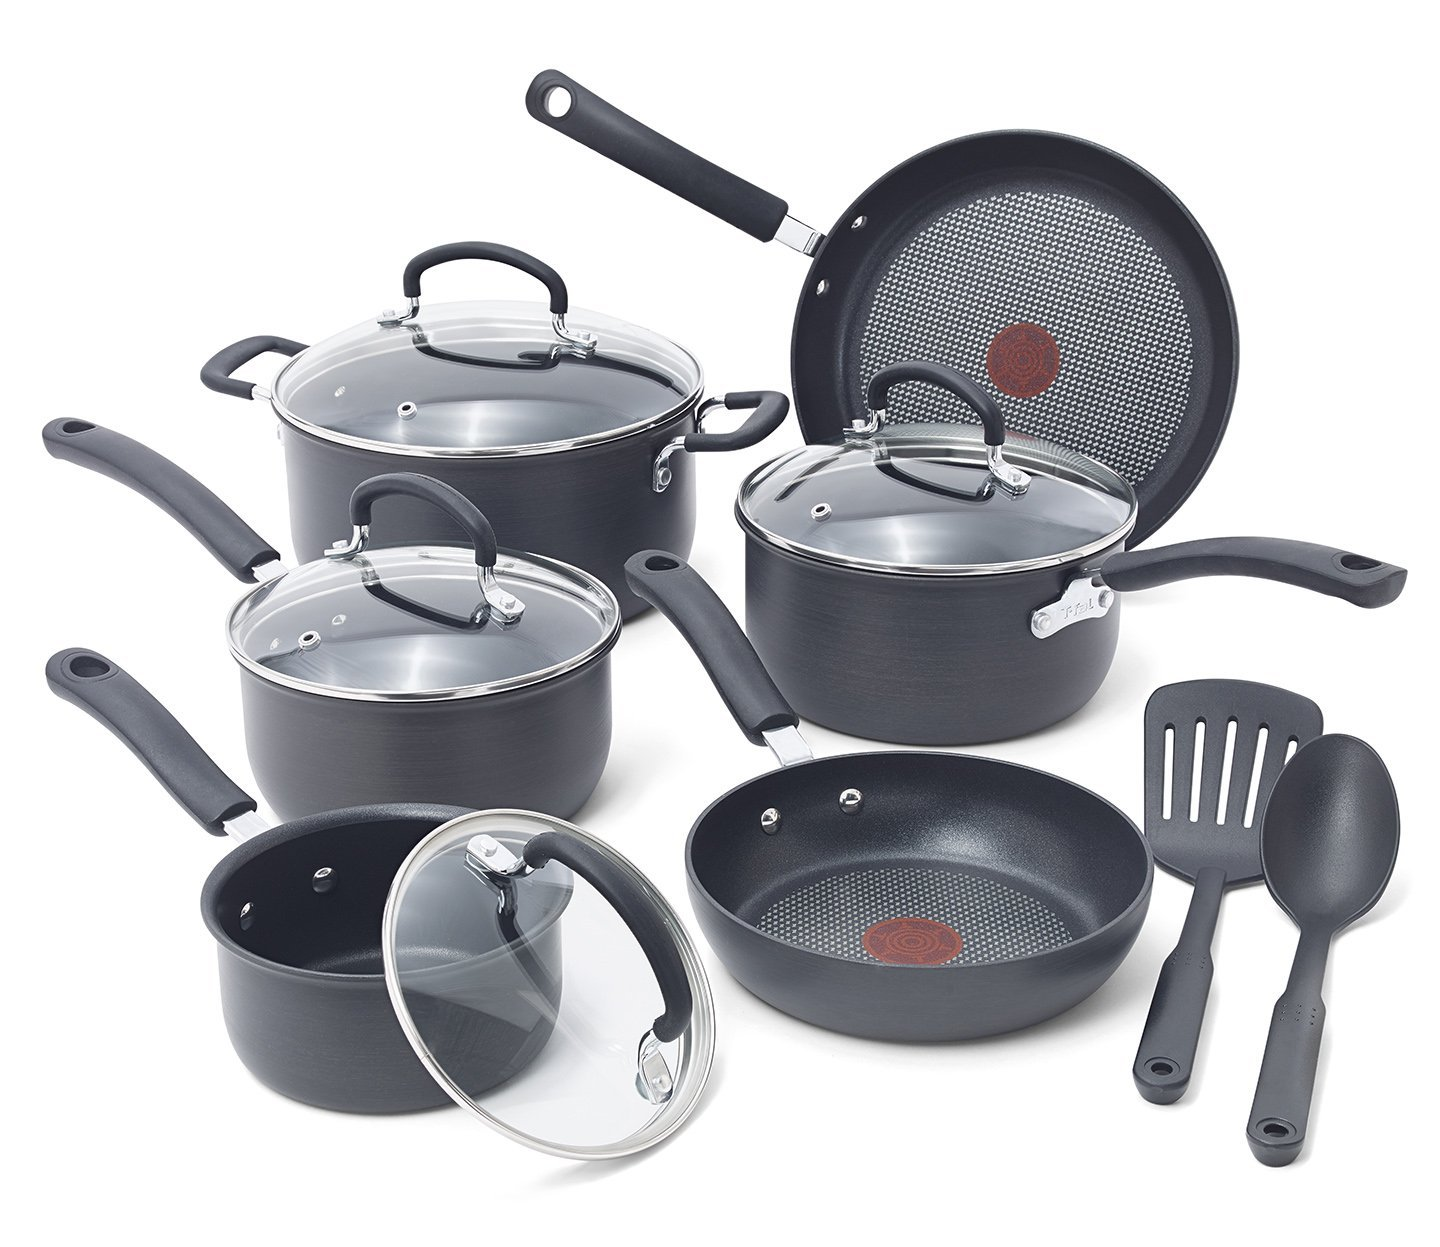 T Fal Ultimate Hard Anodized Cookware Review - Worth A Buy?